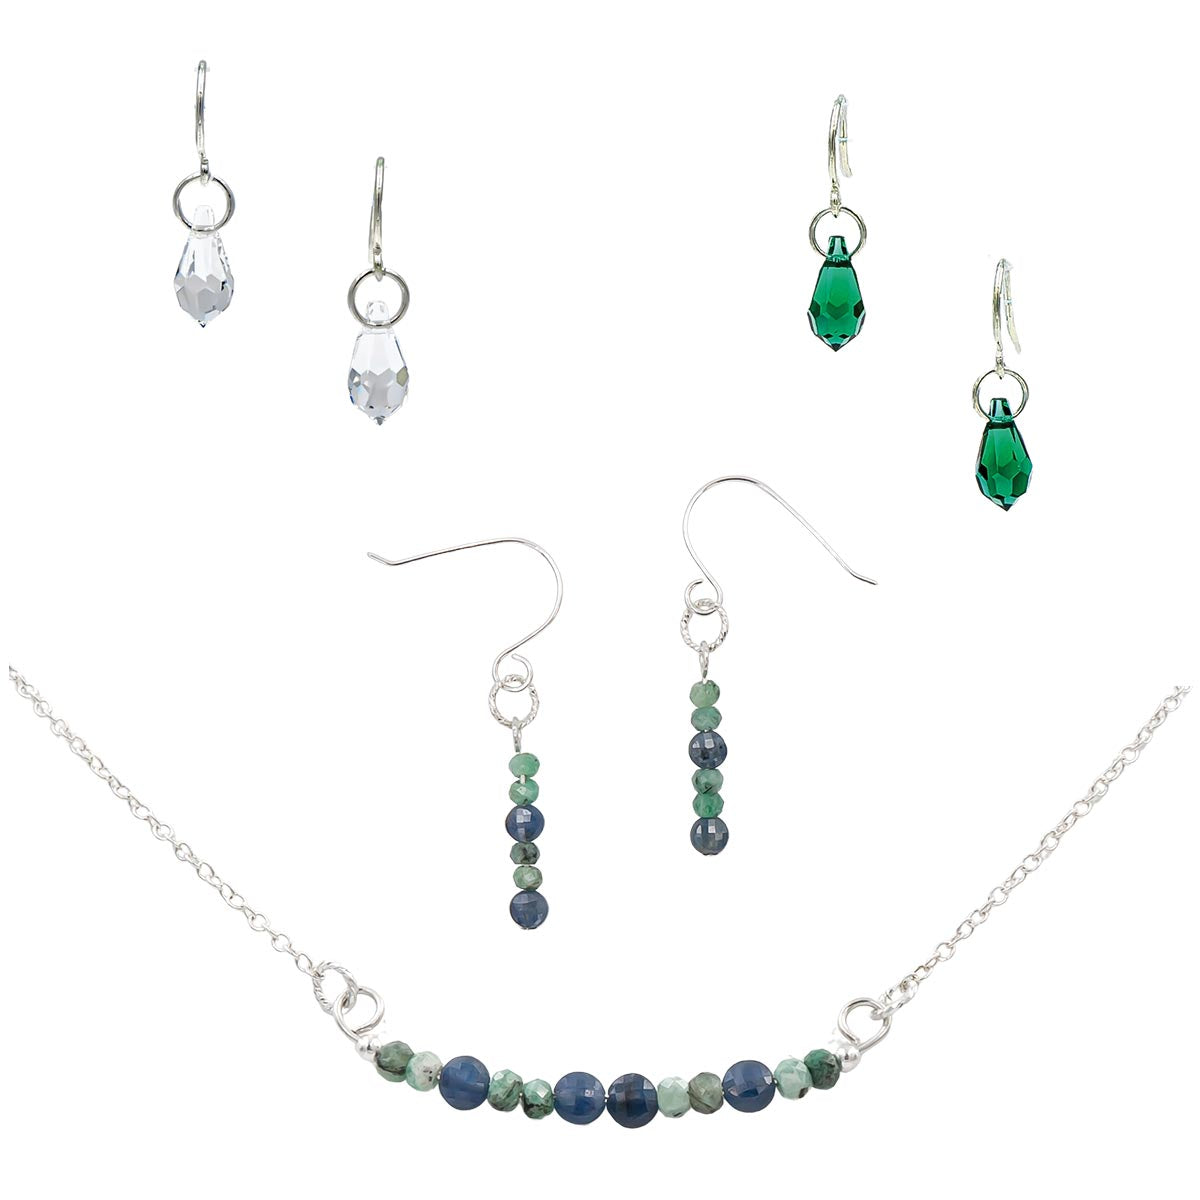 Mothers Day Birthstone Sale Emerald Stone Swarovski Crystal April Diamond Earth Song Jewelry